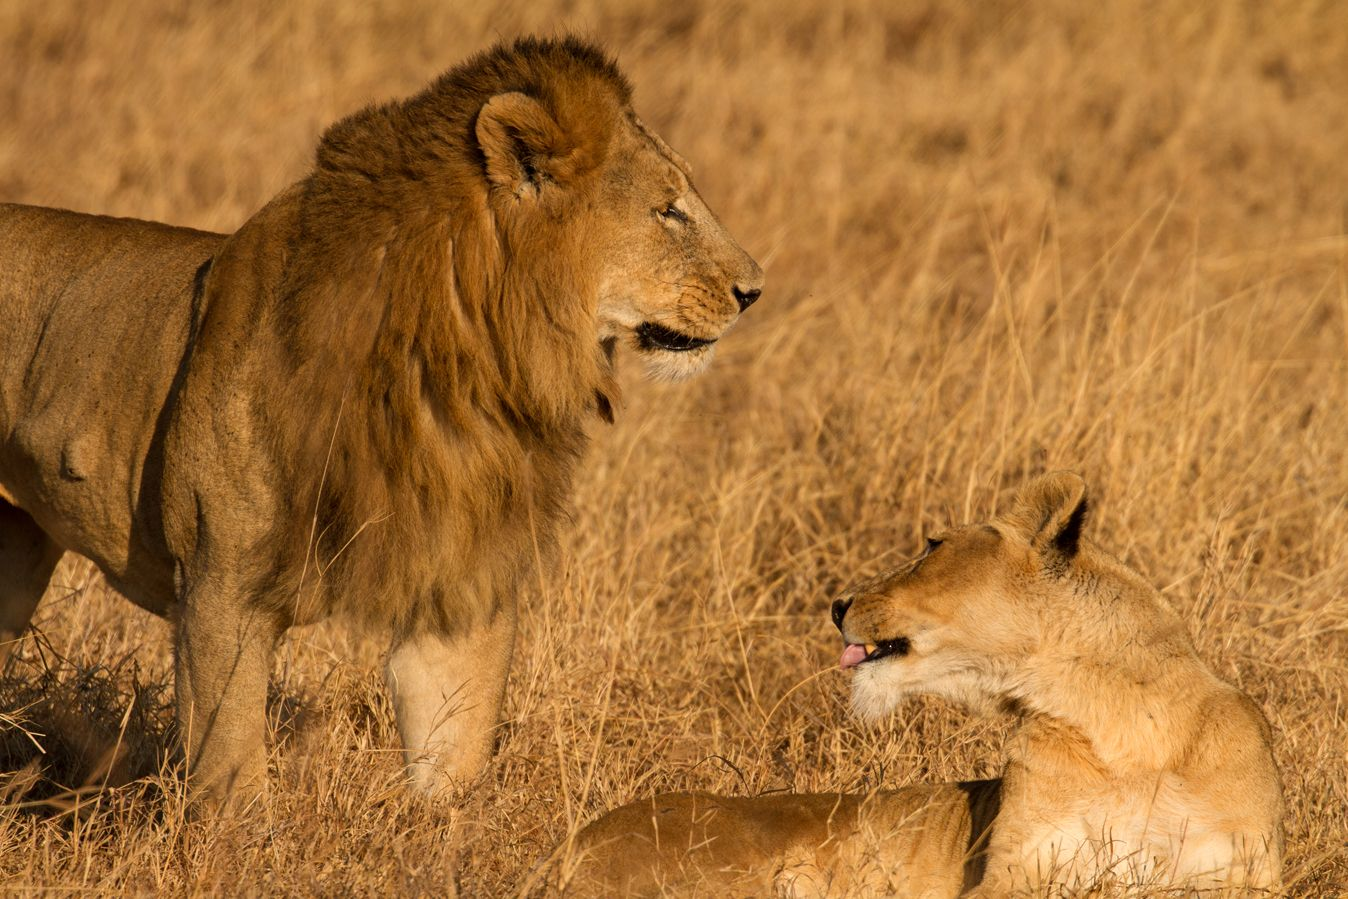 APW conserves lions as part of its Northern Tanzania Big Cats Conservation Initiative